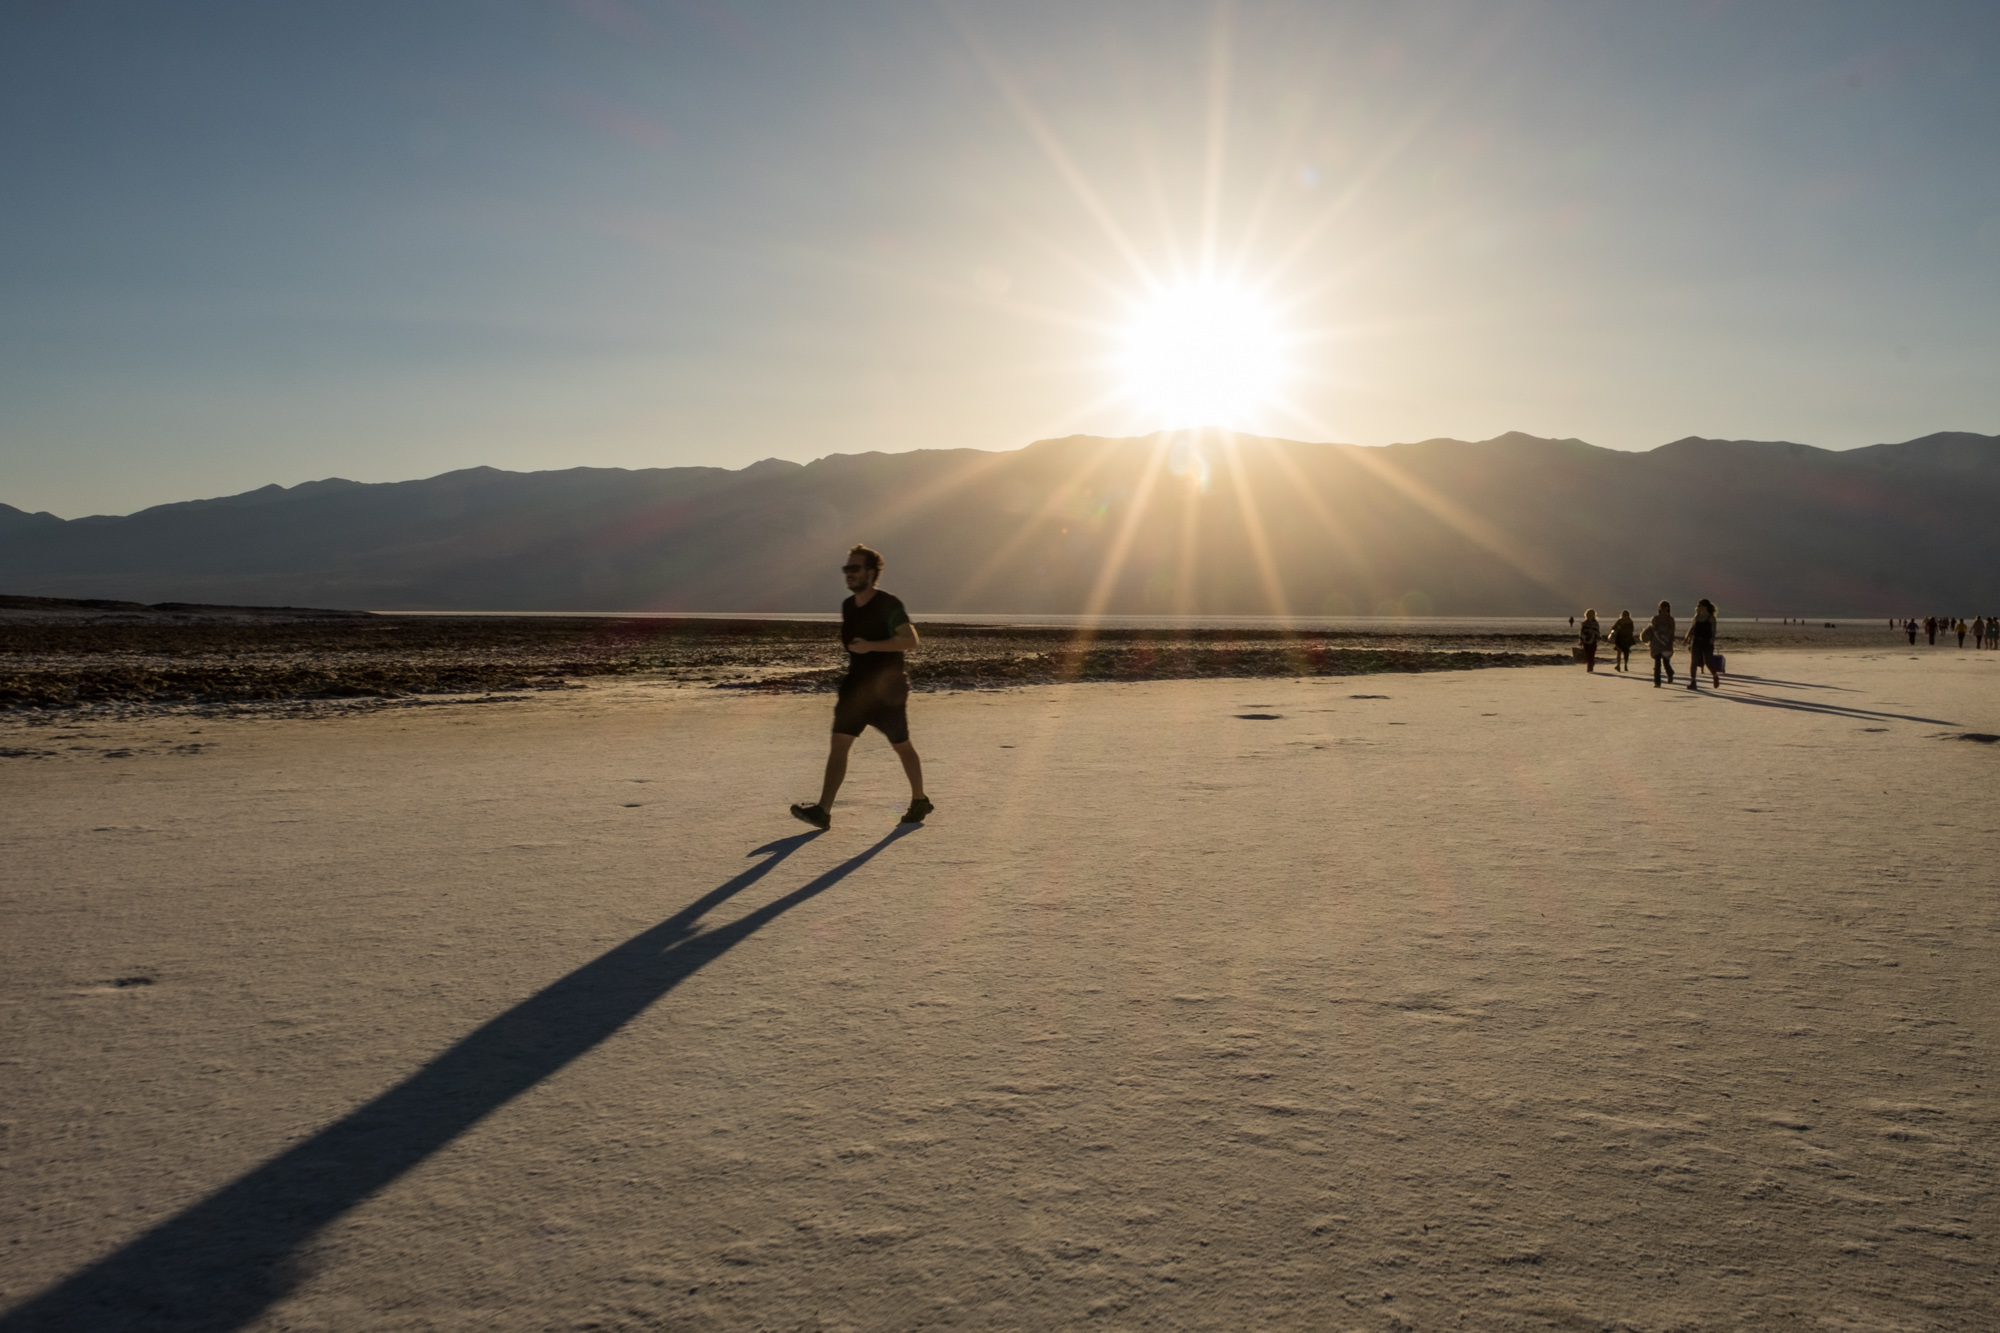 Tourists walking back from the middle of Badwater Basin as the sun sinks low.